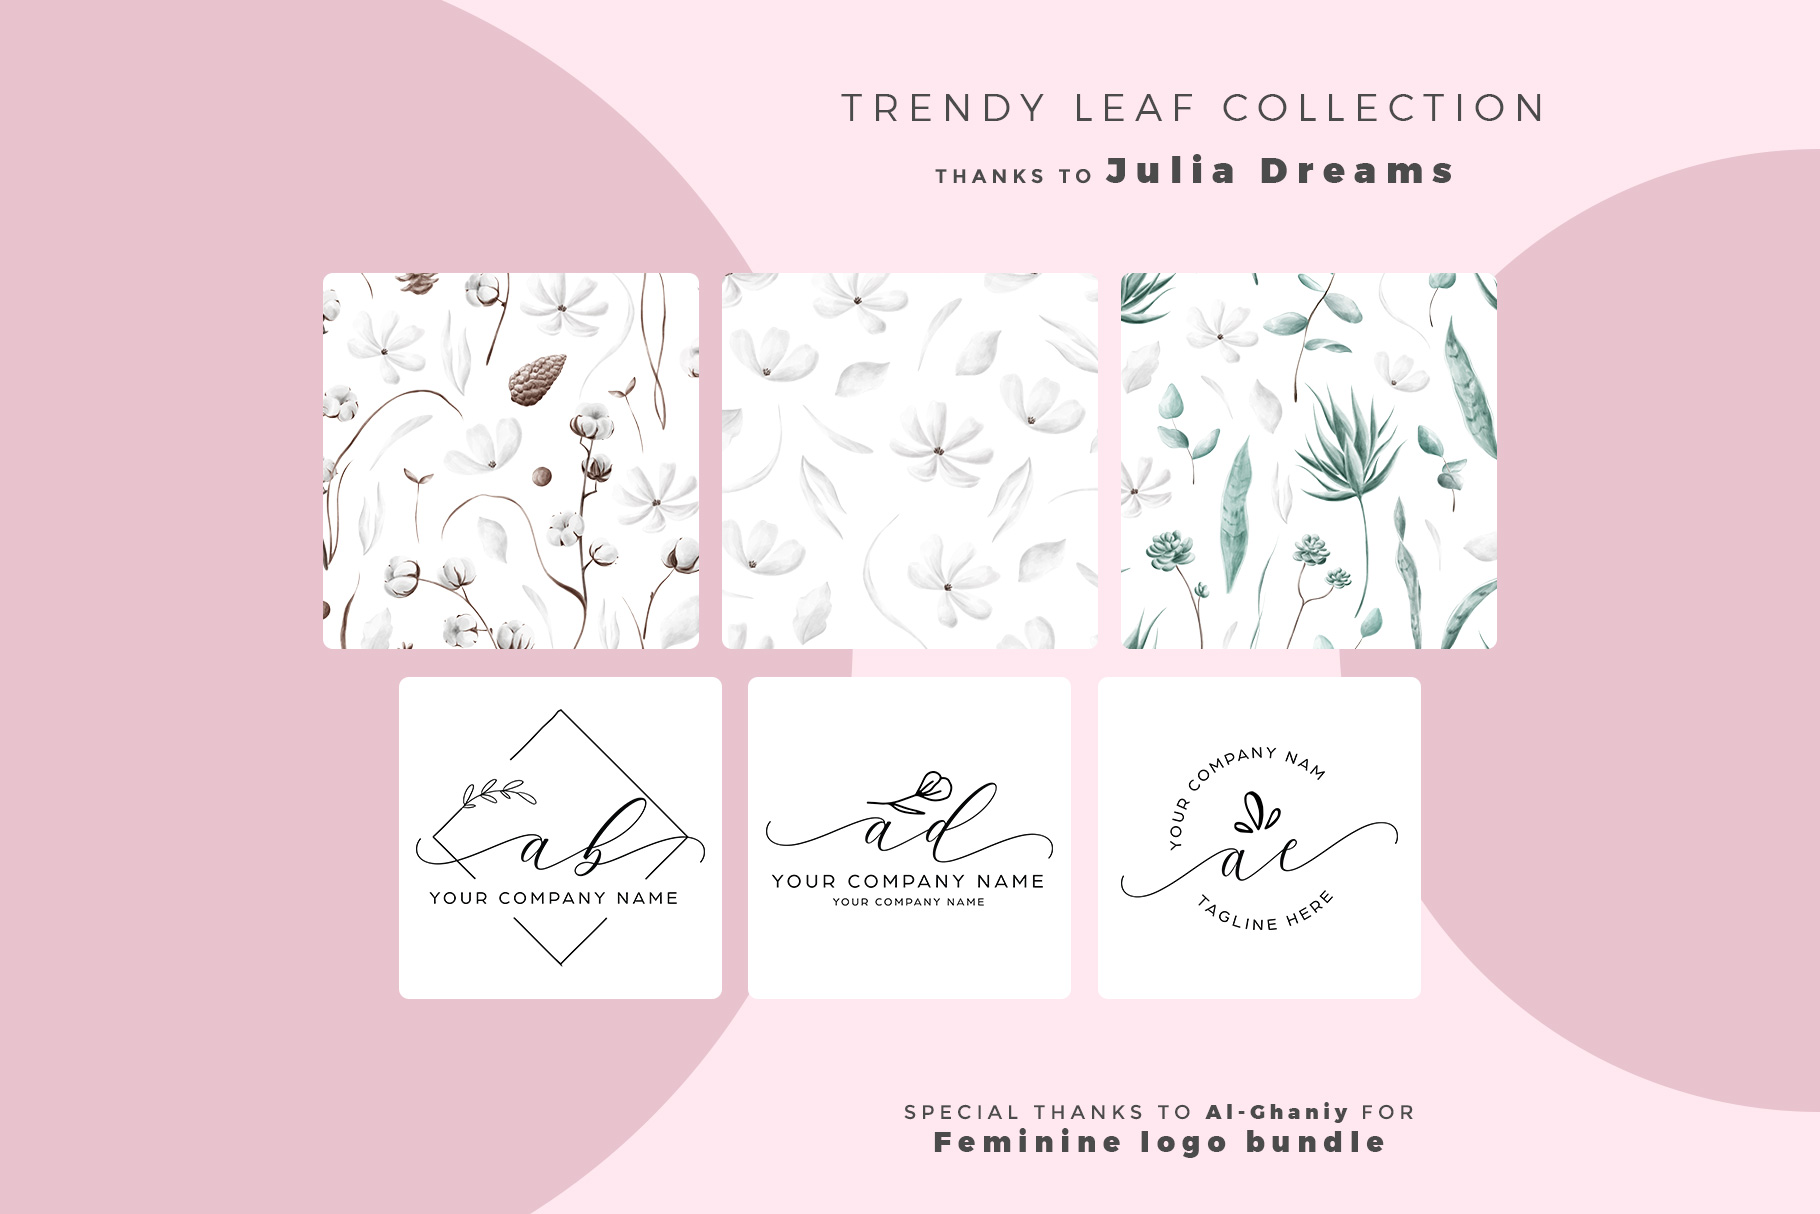 designer credit of the top view cosmetic bottle and box packaging mockup